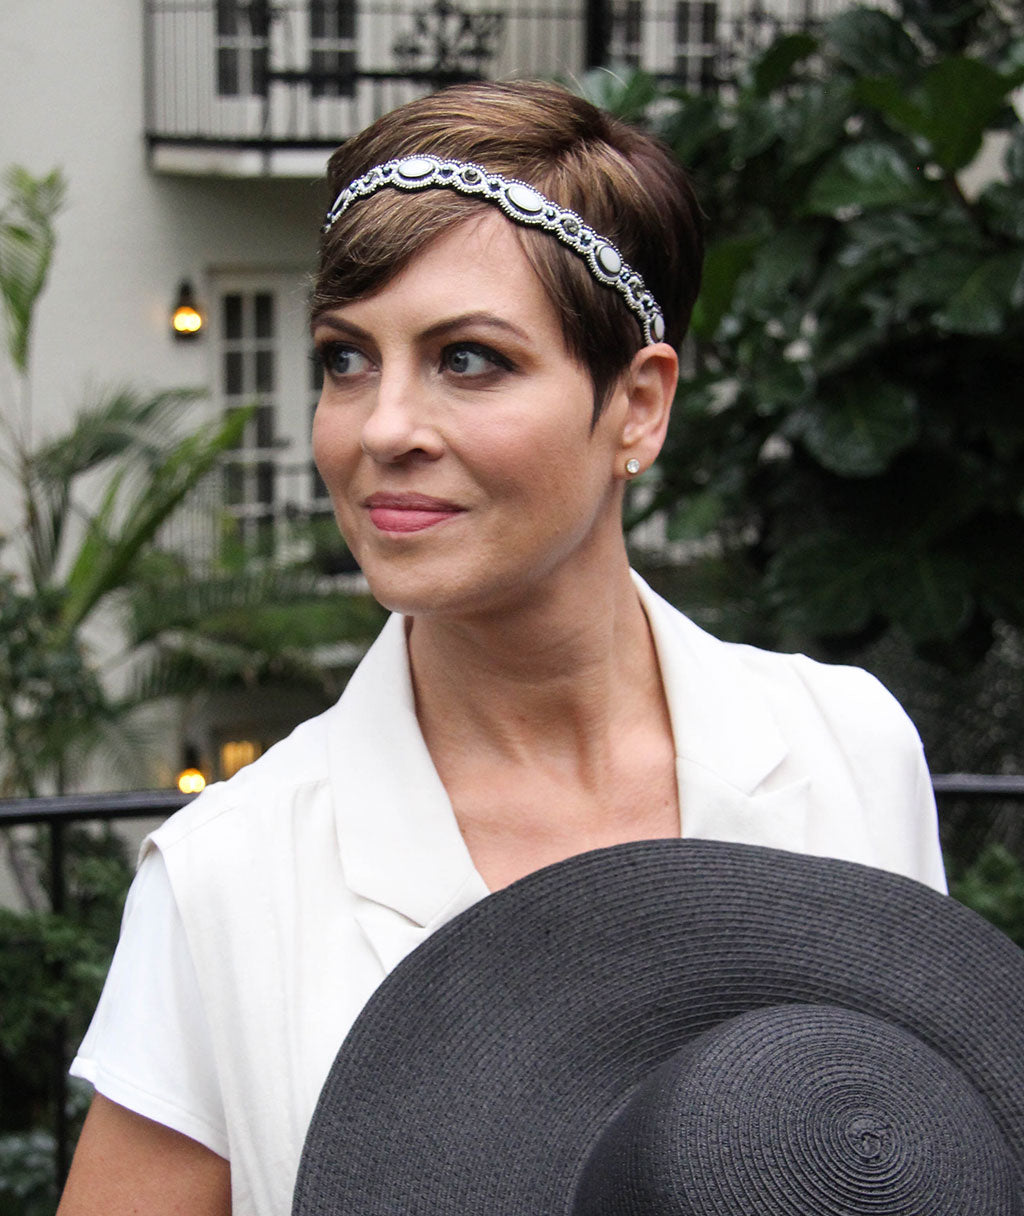 Yacht Party - Luxe Headband